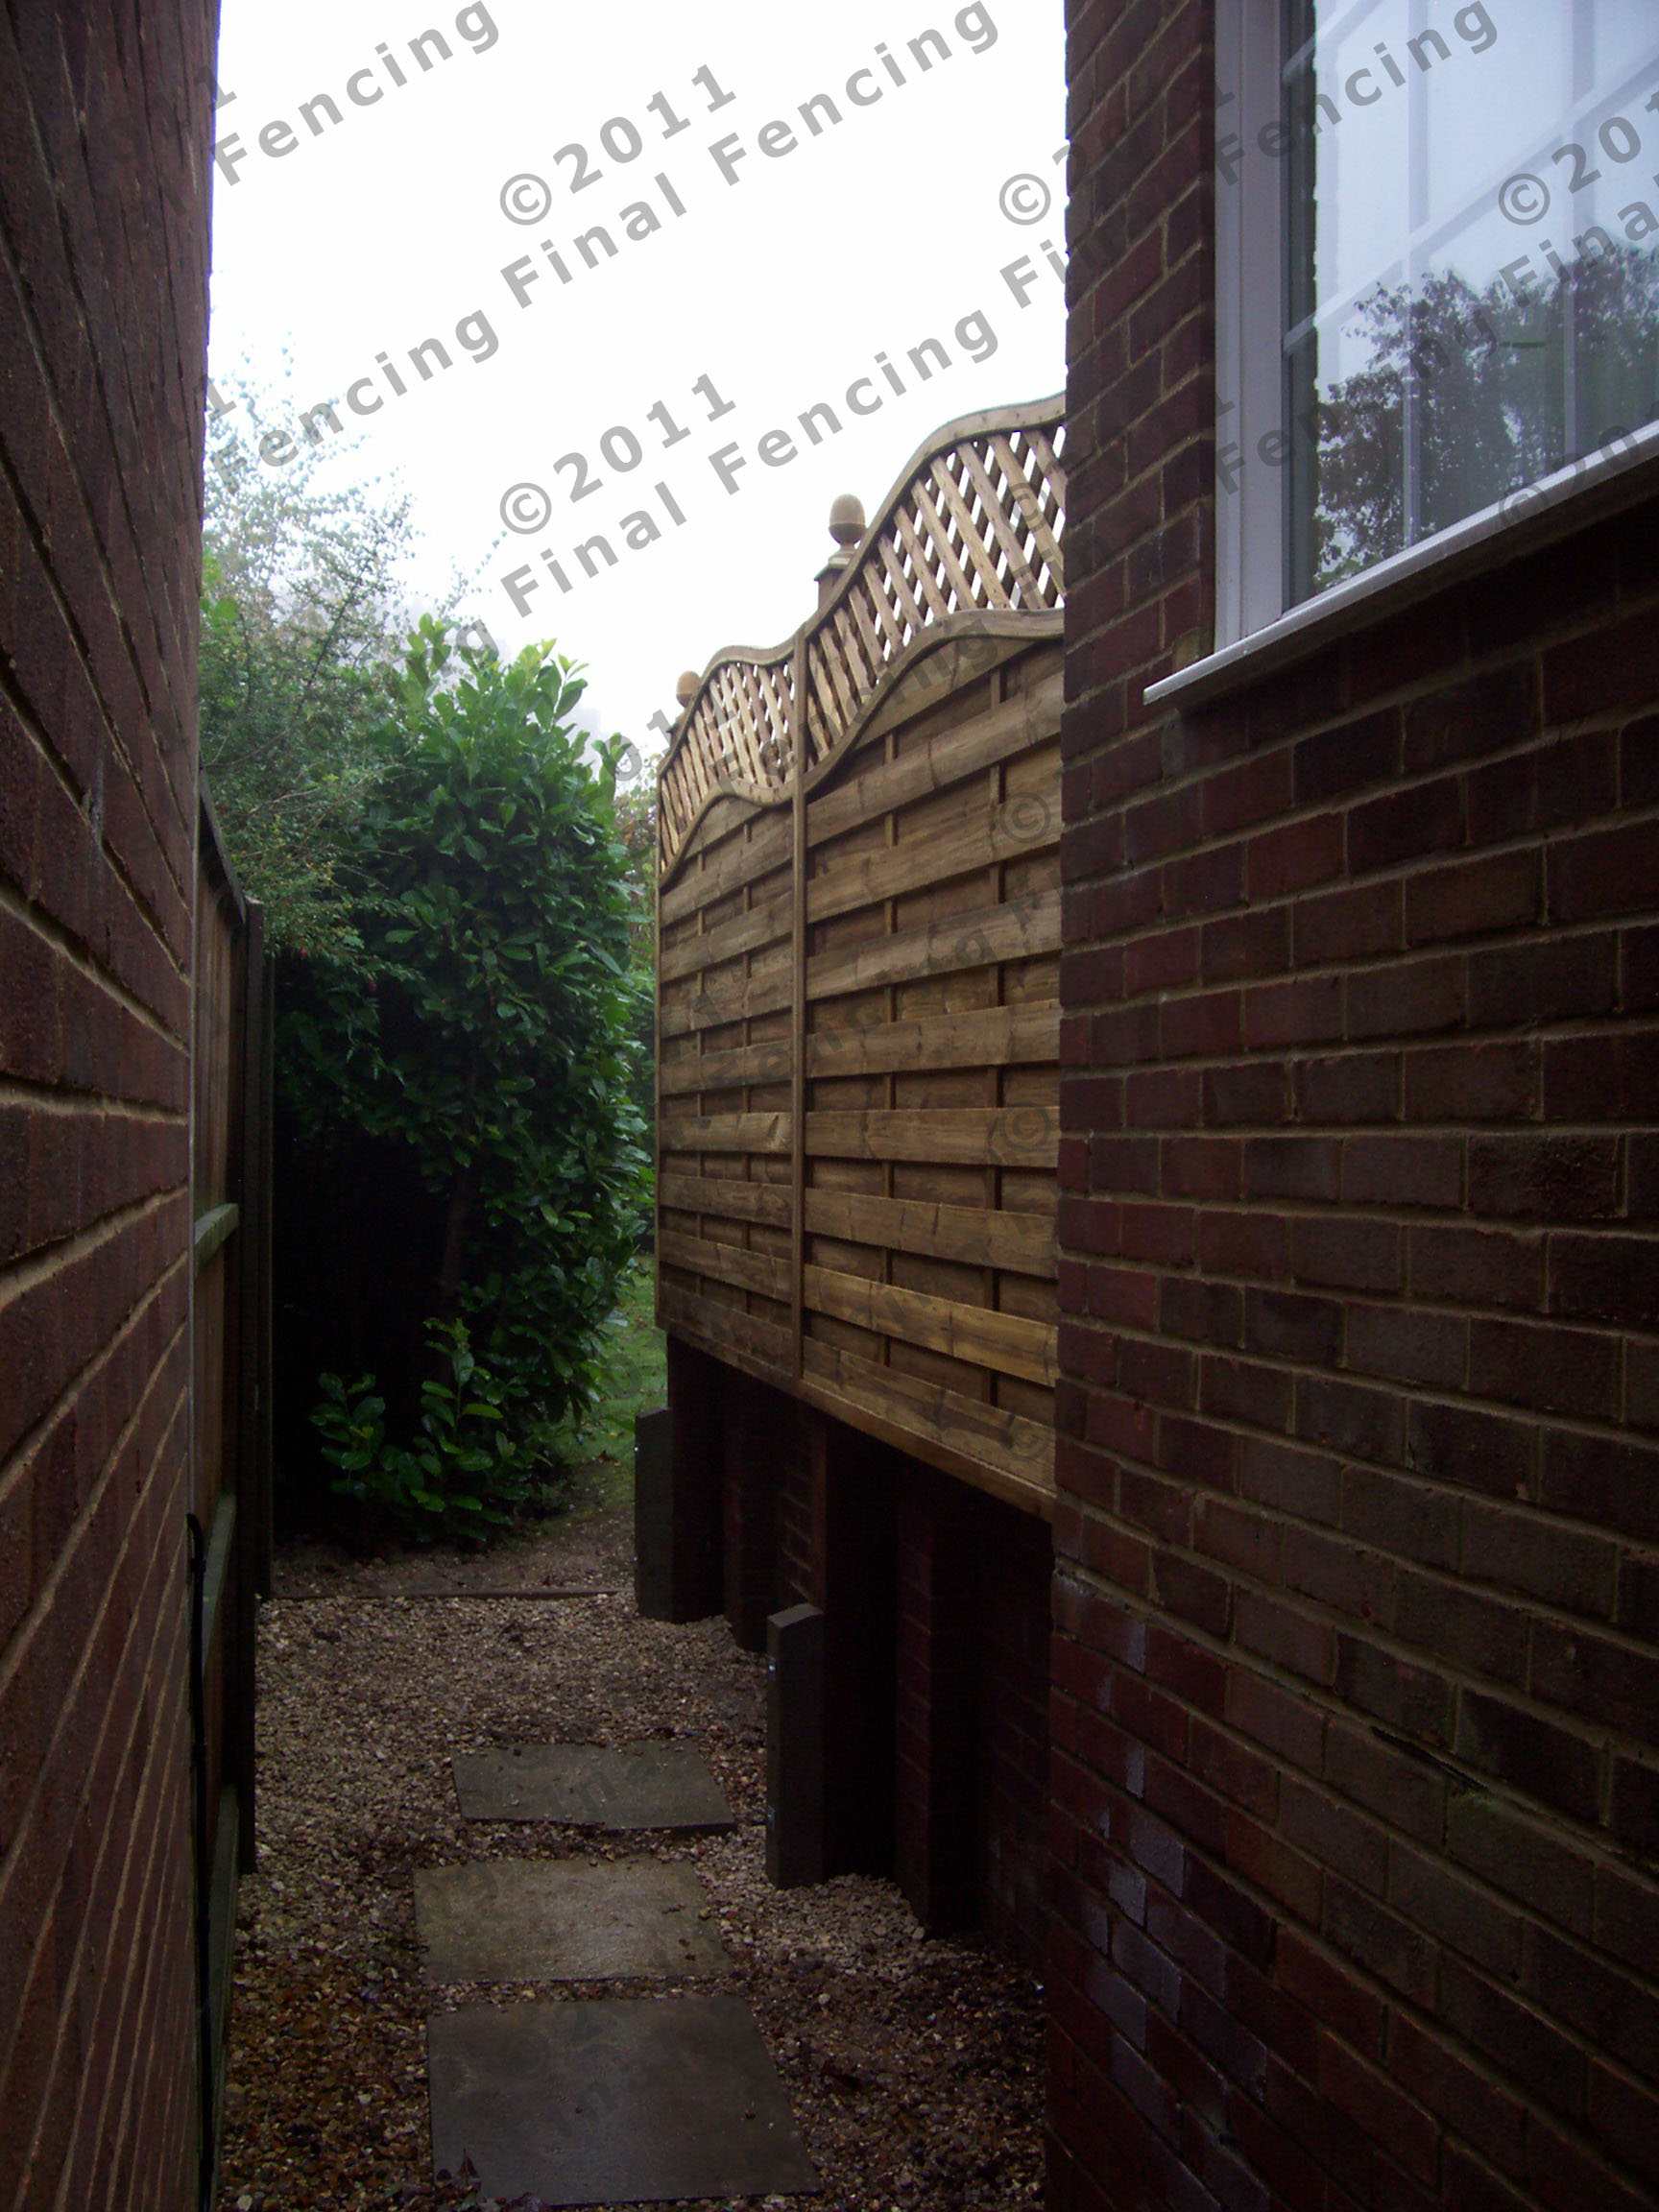 Fitted to brickwork